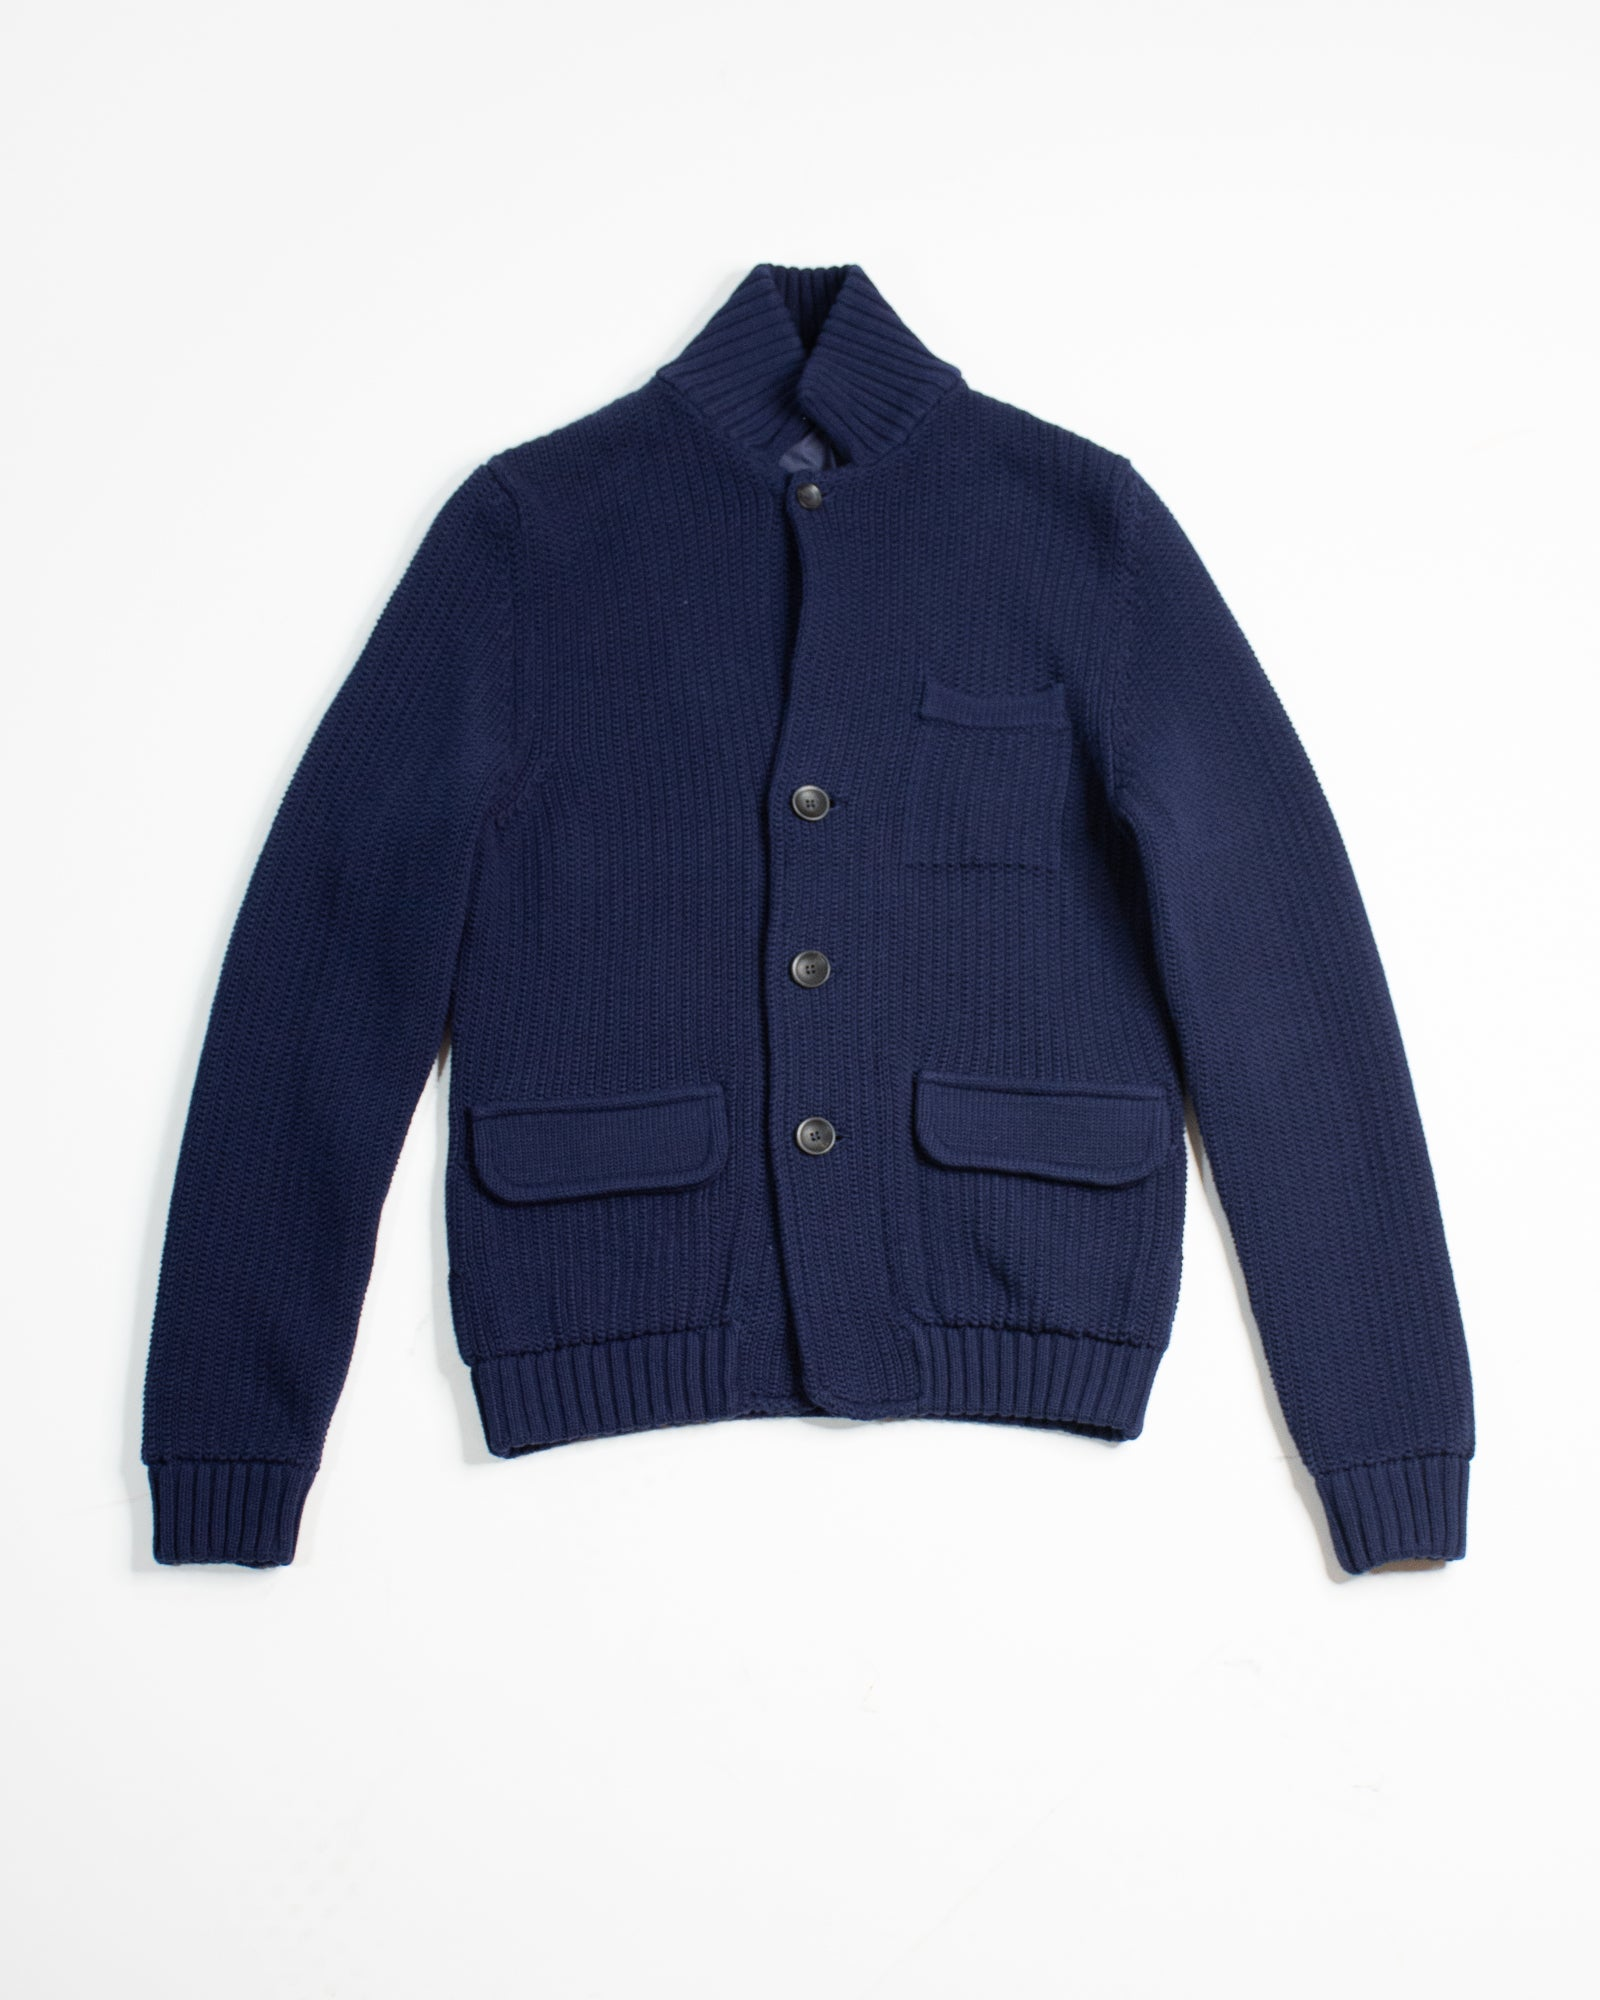 SLOWEAR Sweater Jacket